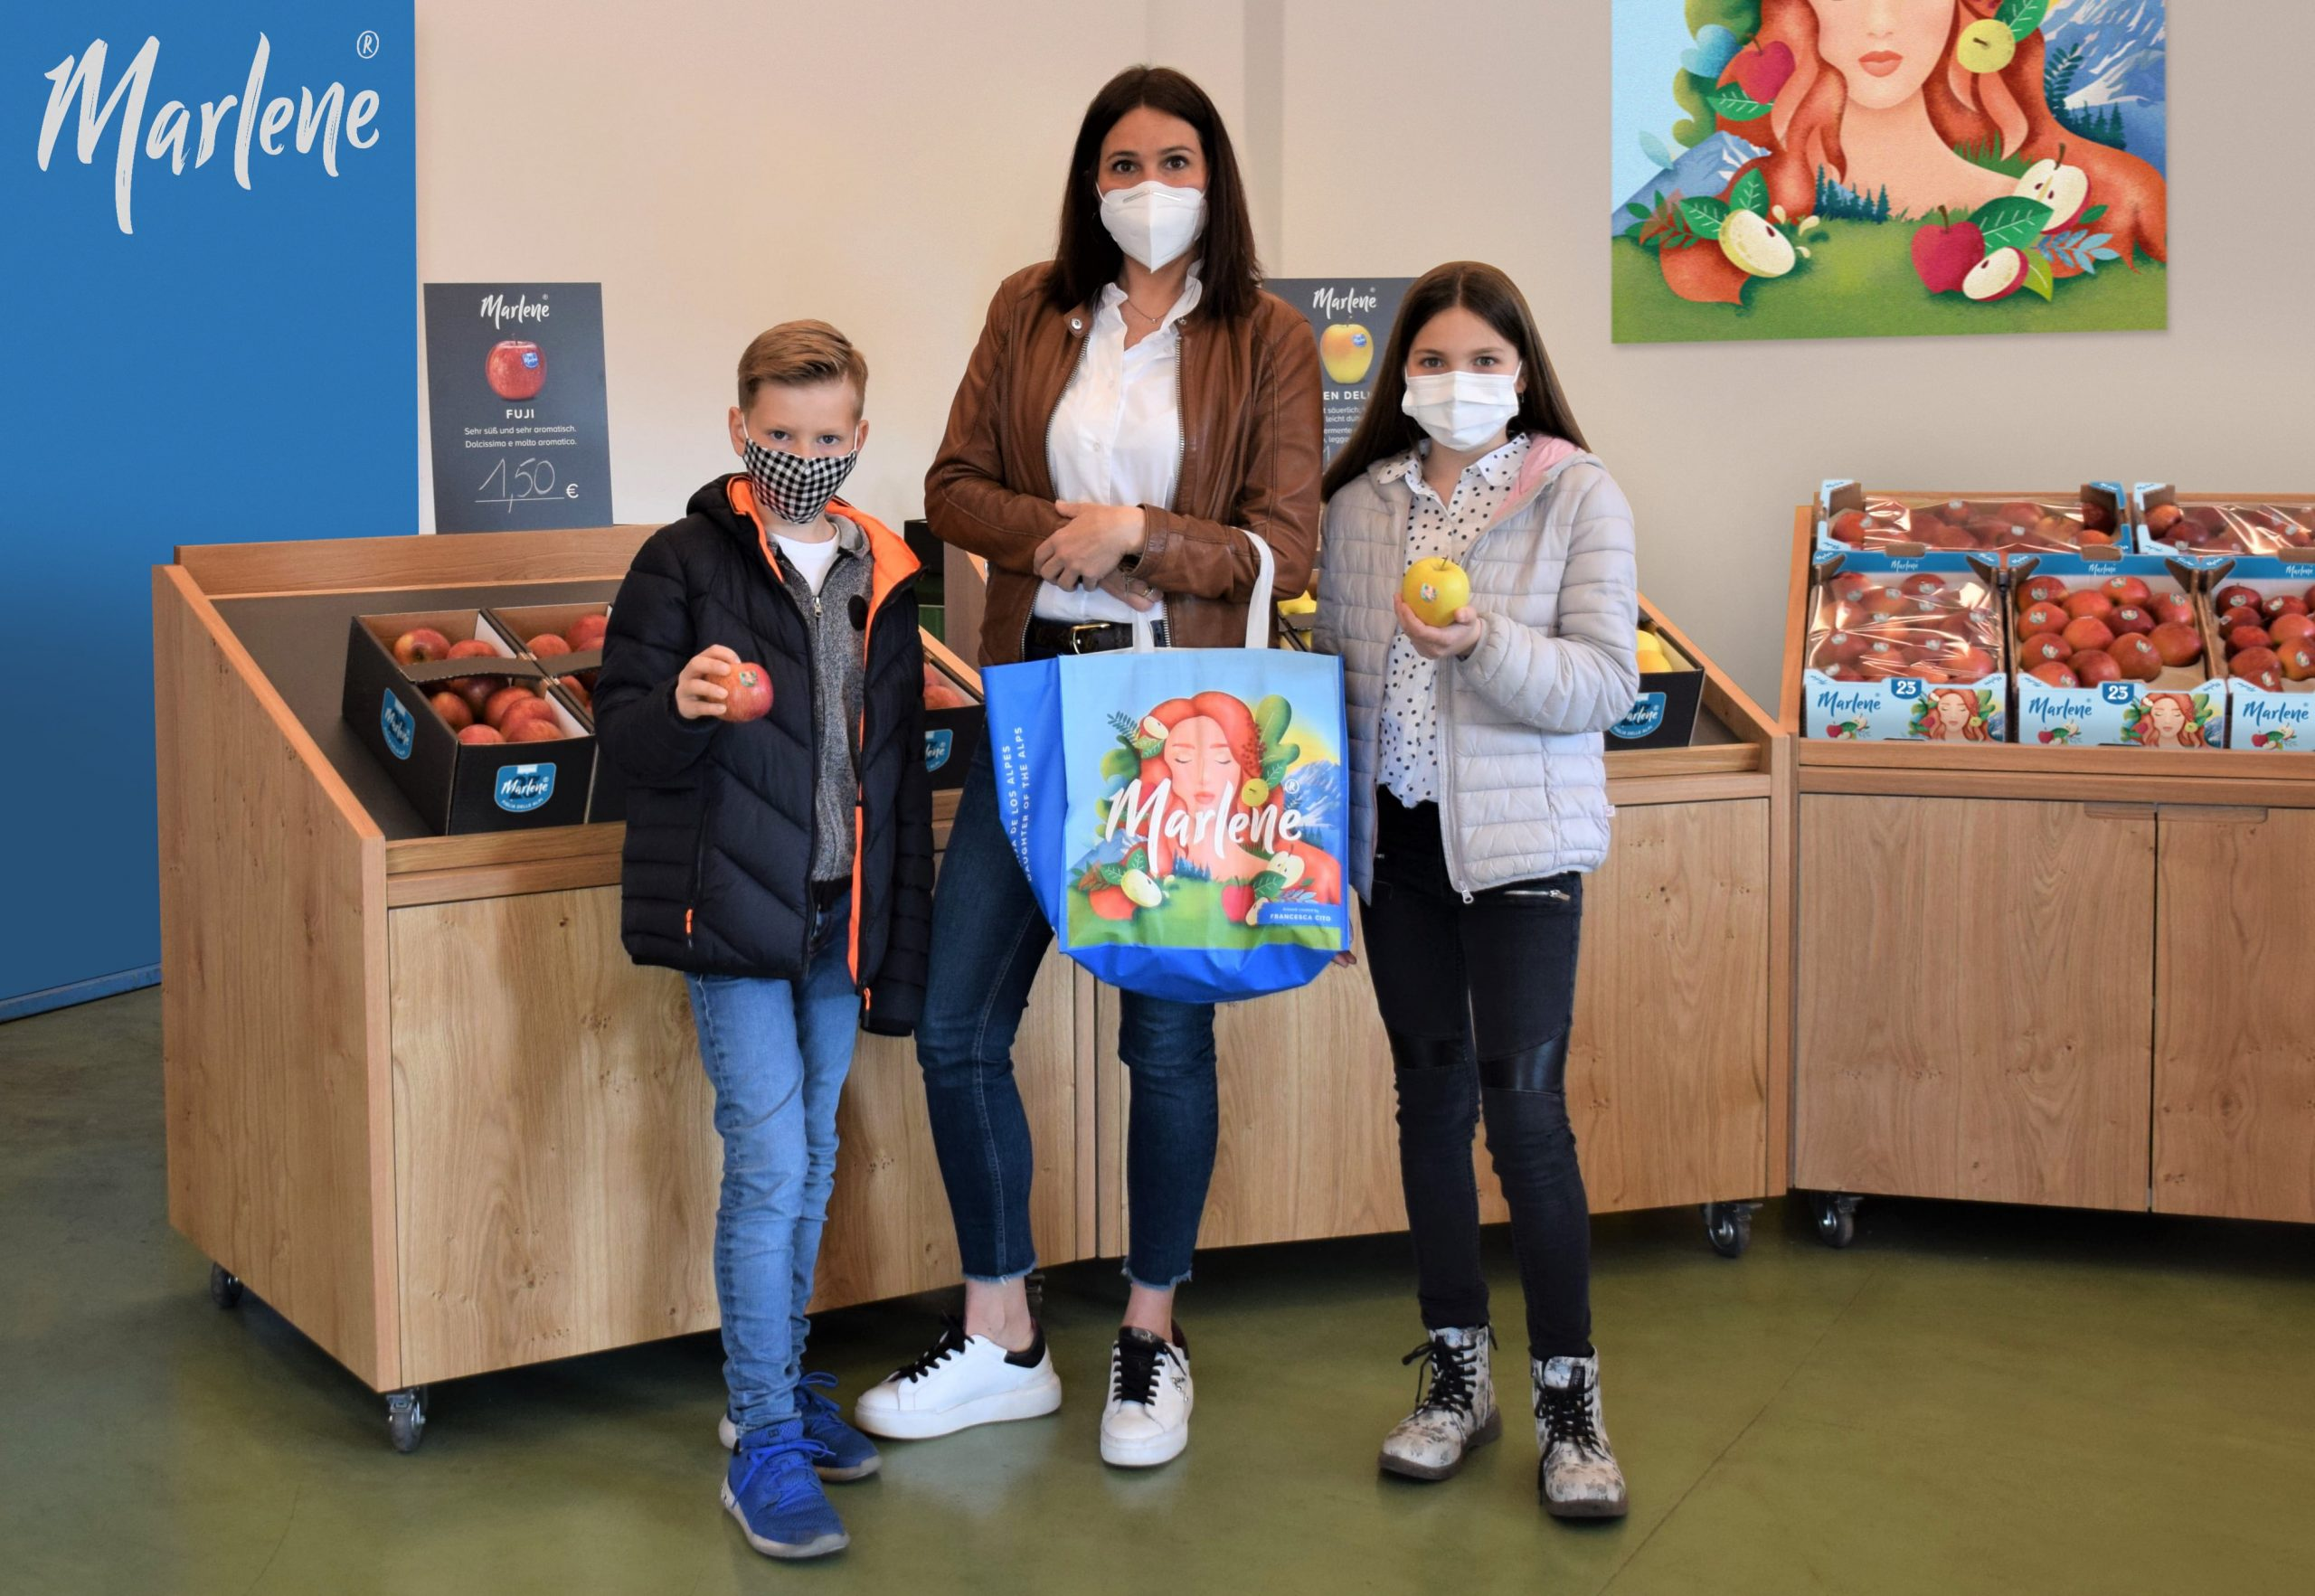 The Marlene® nymph decorates 150,000 bags across Europe